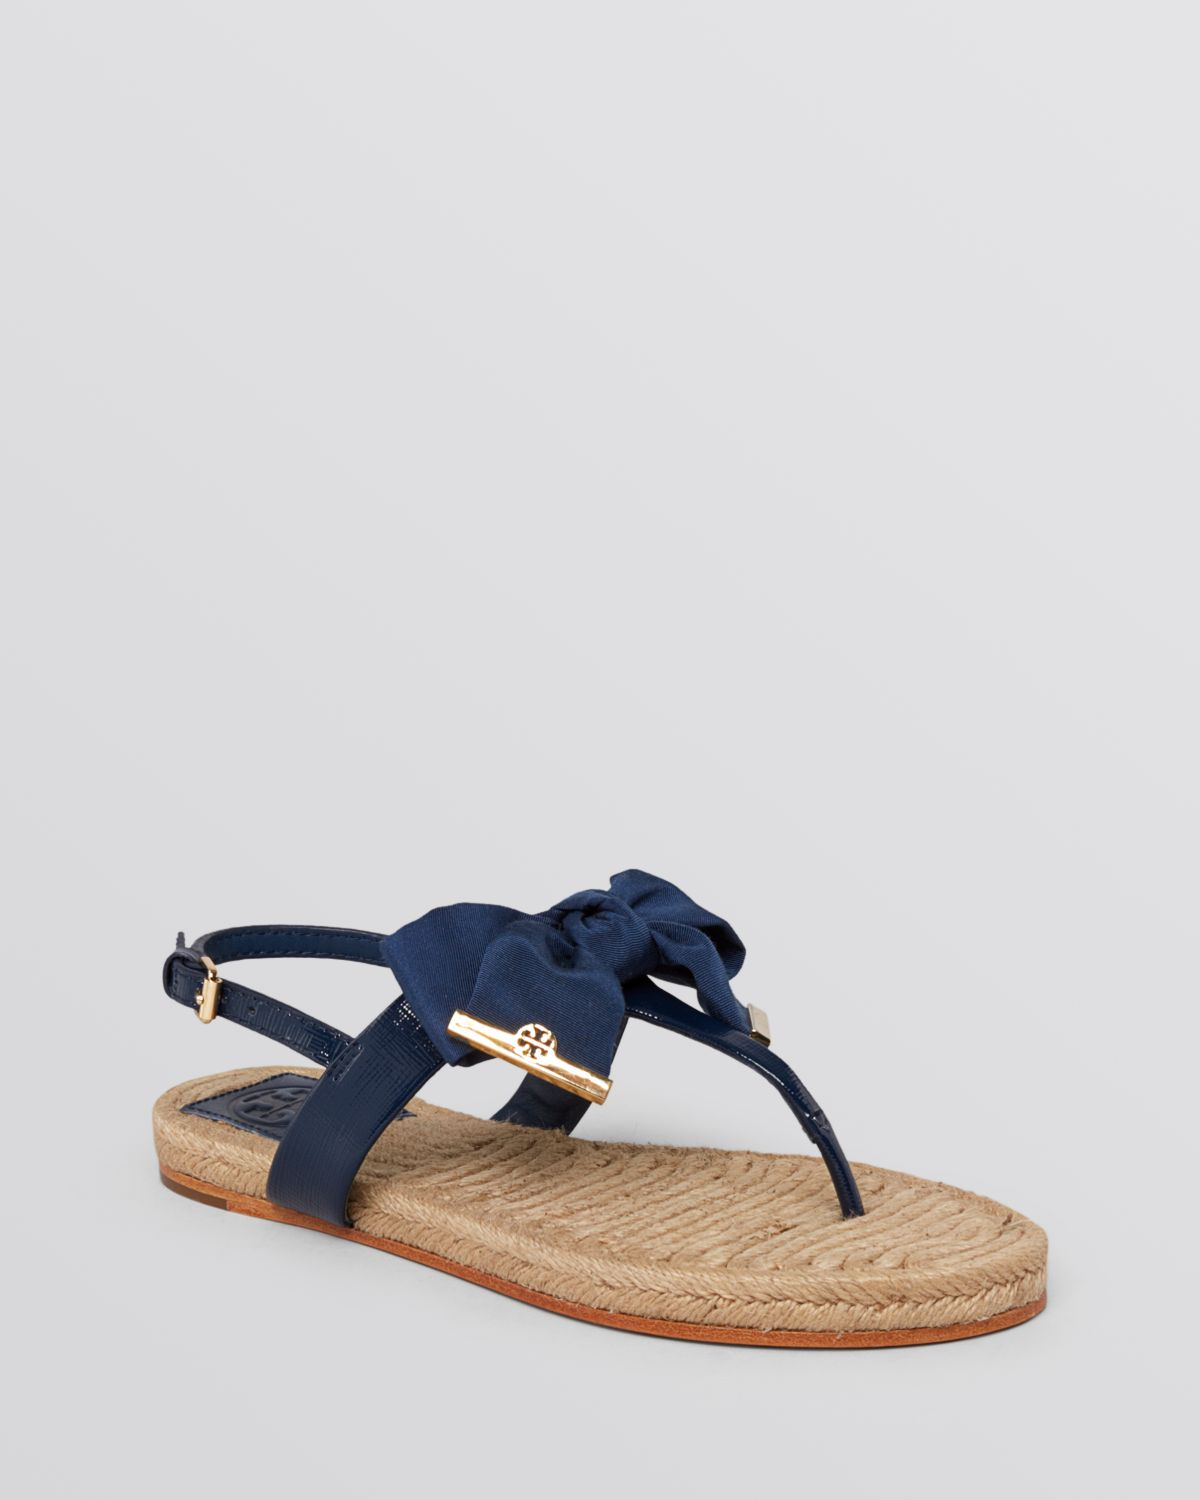 fb0148bed06c Lyst - Tory Burch Flat Thong Sandals Penny Bow in Blue